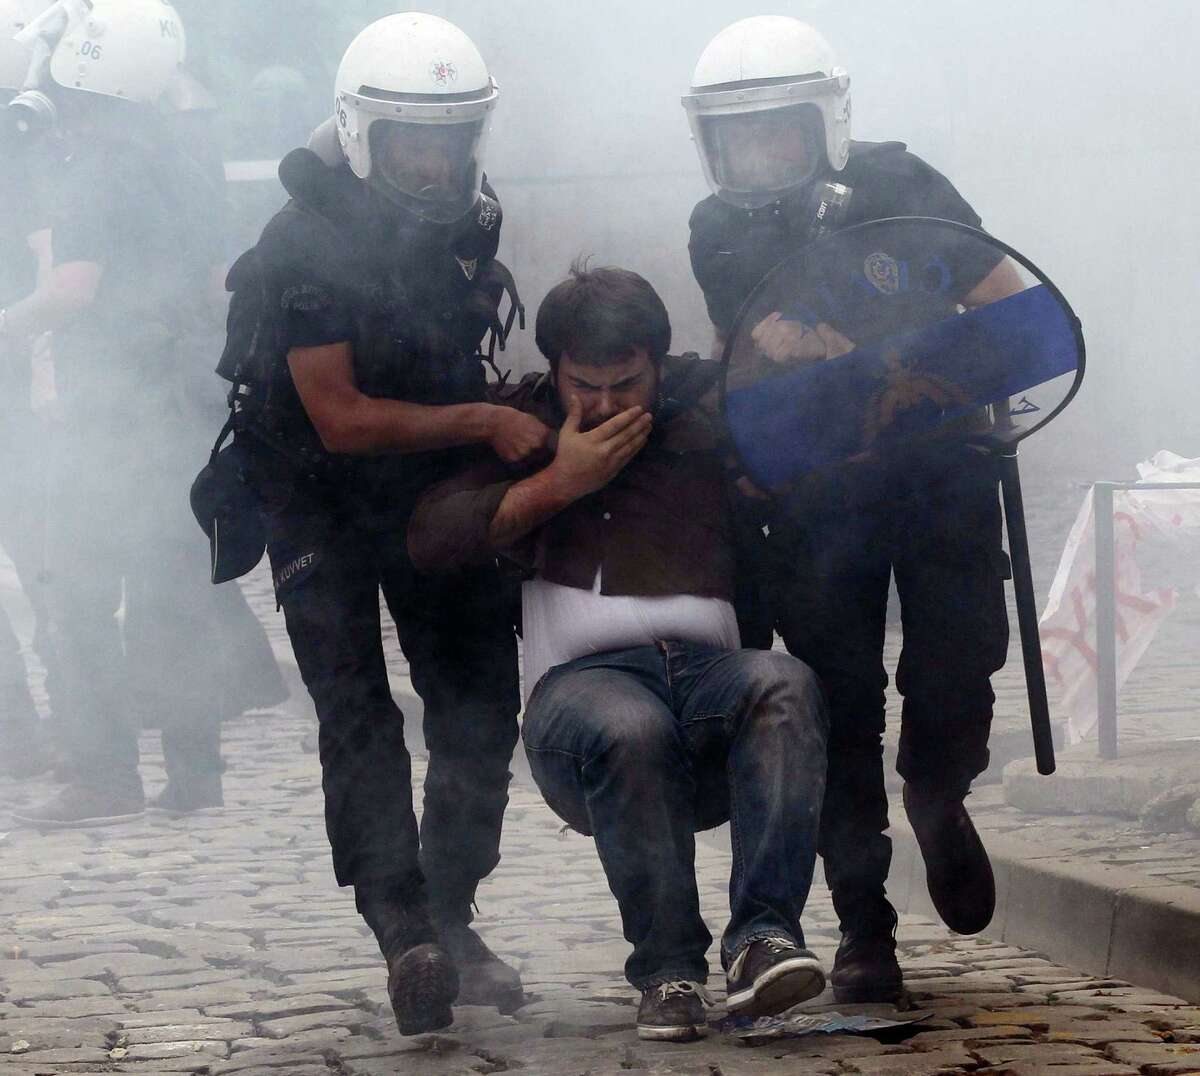 Turkish police arrest a protester in Ankara, where hundreds gathered after more than 270 people were killed in an explosion at a mine.